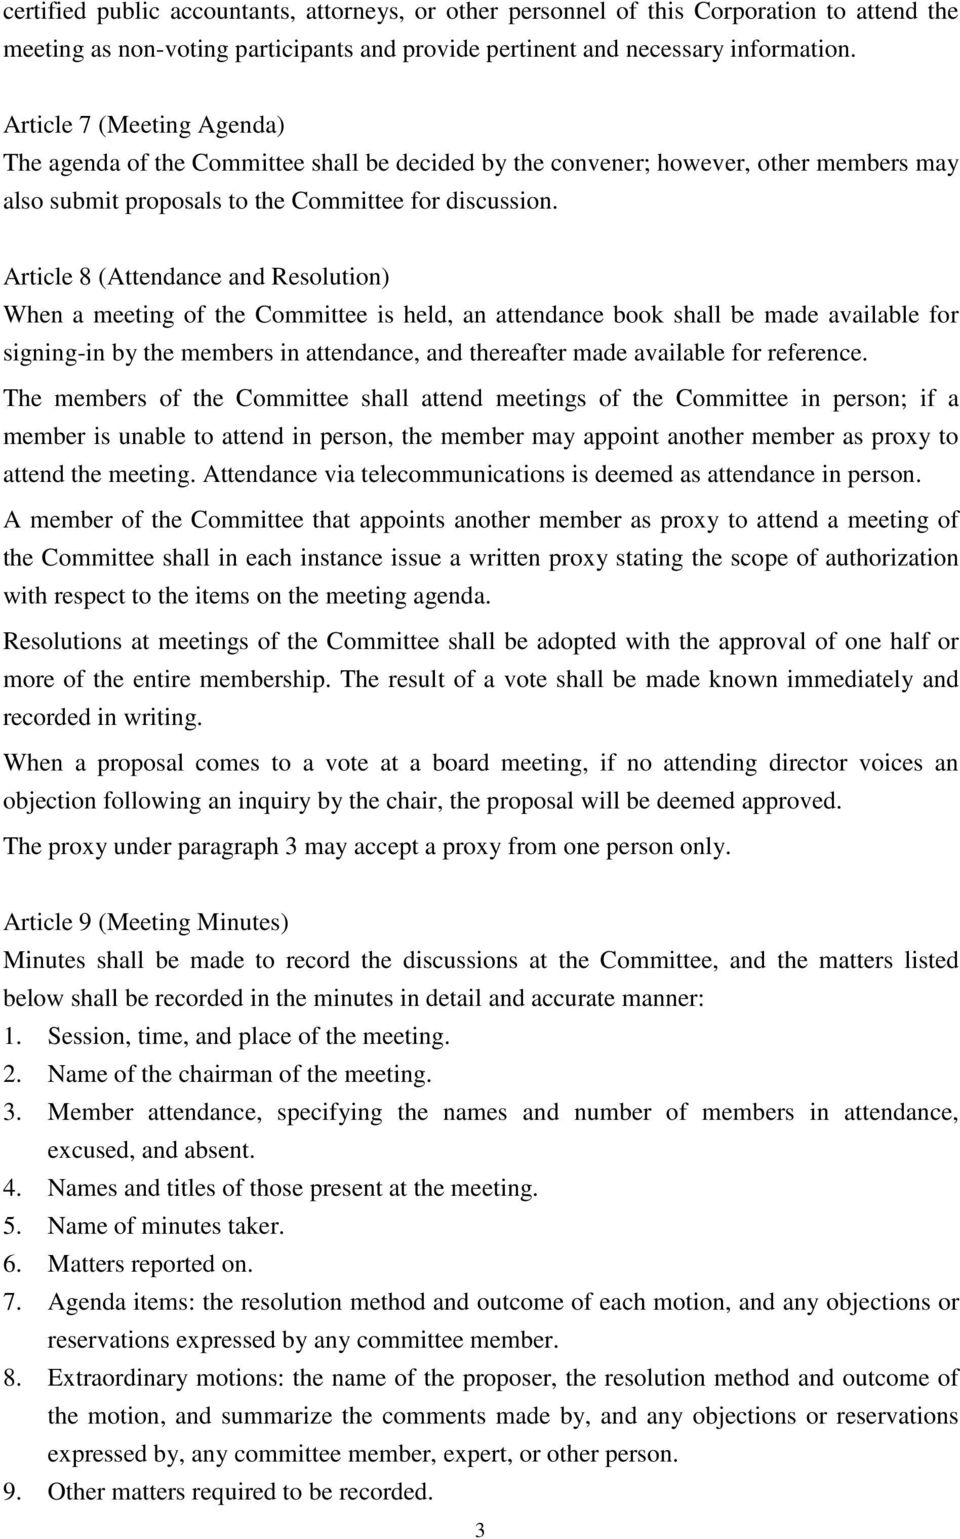 Article 8 (Attendance and Resolution) When a meeting of the Committee is held, an attendance book shall be made available for signing-in by the members in attendance, and thereafter made available